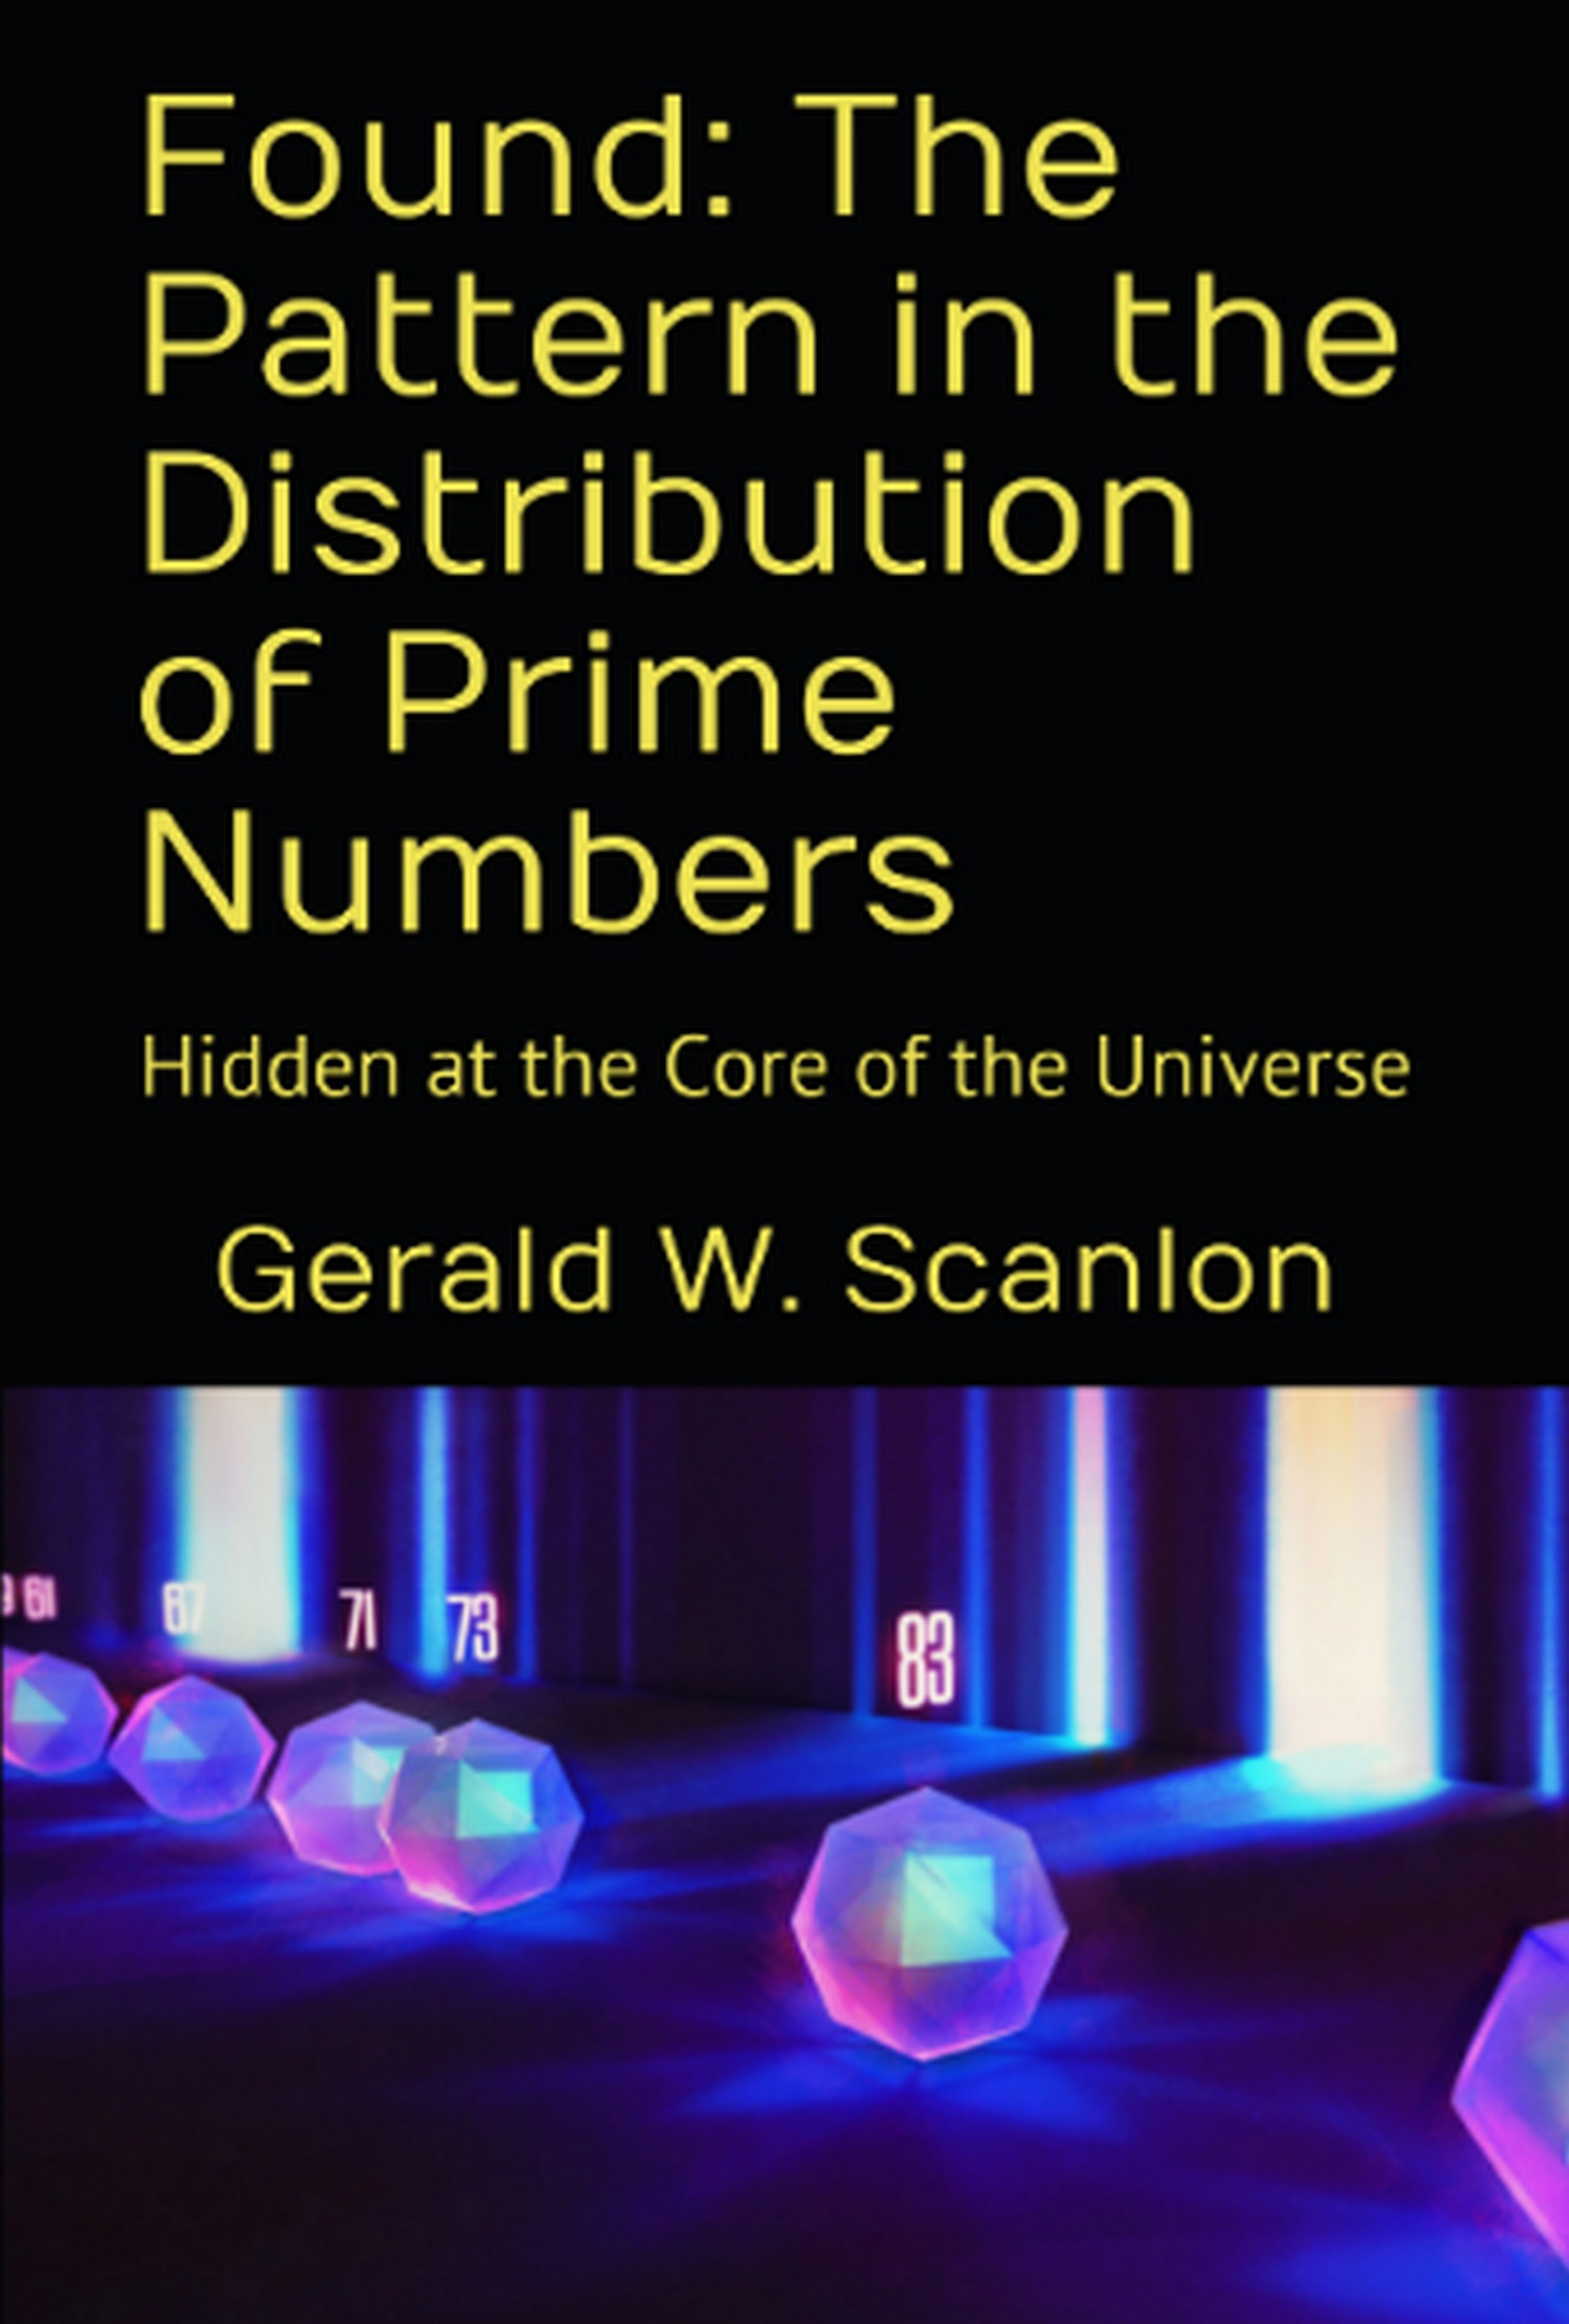 [PDF] [EPUB] Found: The Pattern in the Distribution of Prime Numbers: Hidden at the Core of the Universe Download by Gerald W. Scanlon